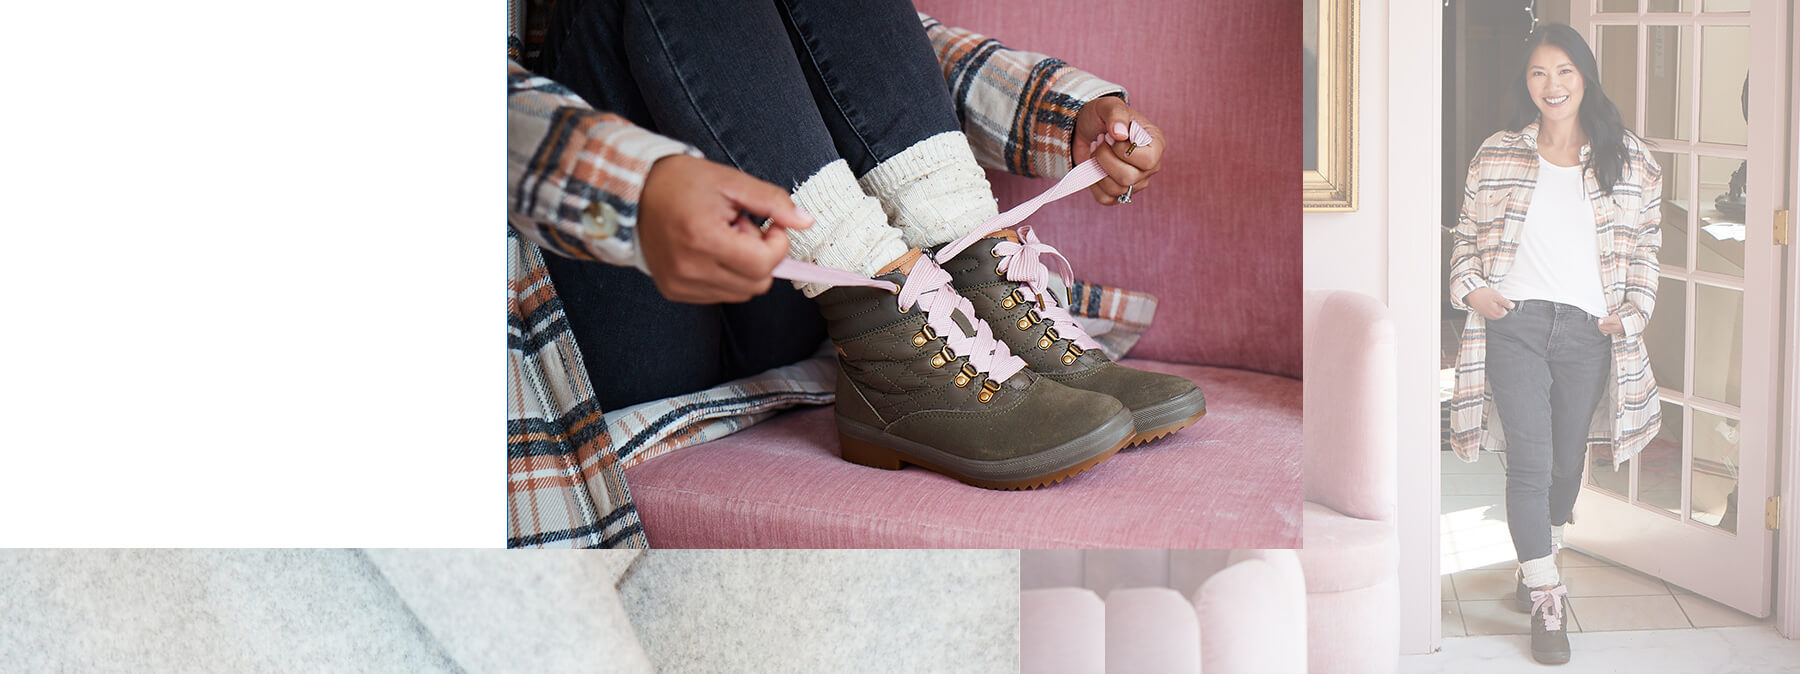 Flannel and pink laces.